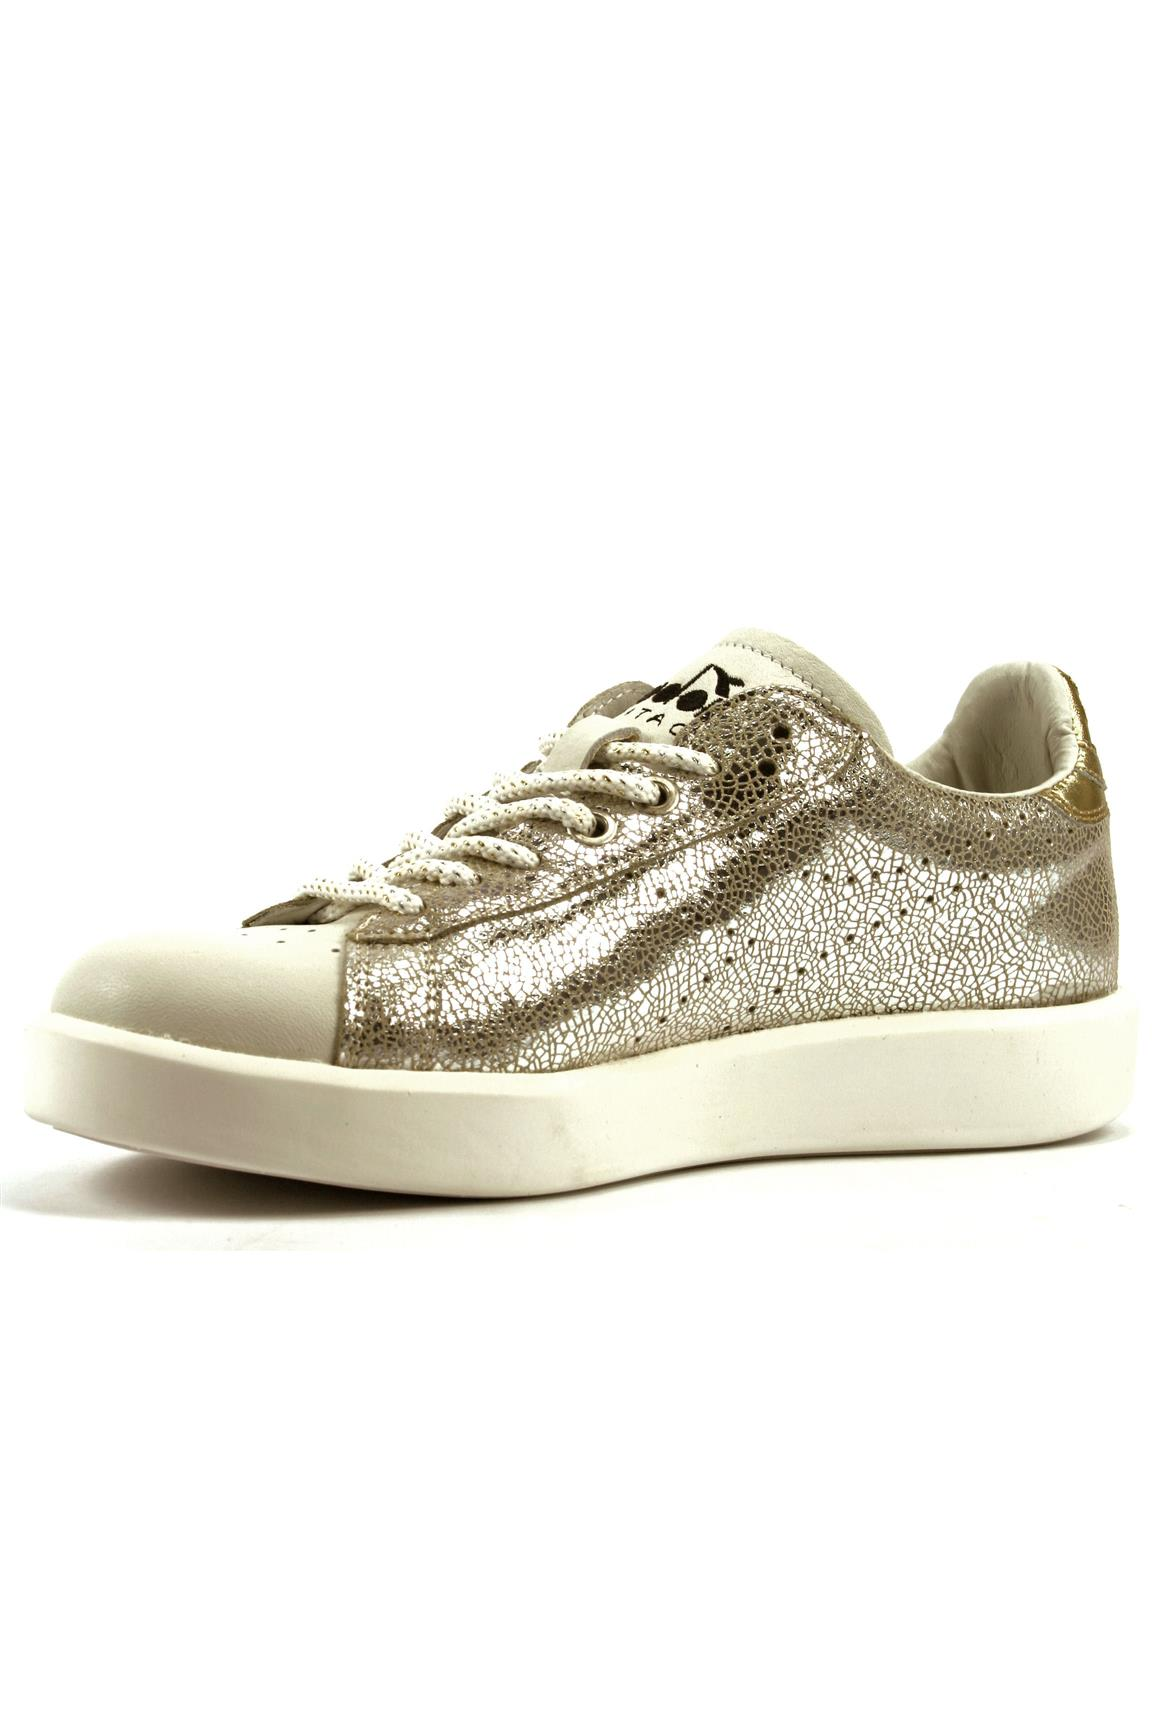 Game Silver Laminated Leather DIADORA heritage Sneakers